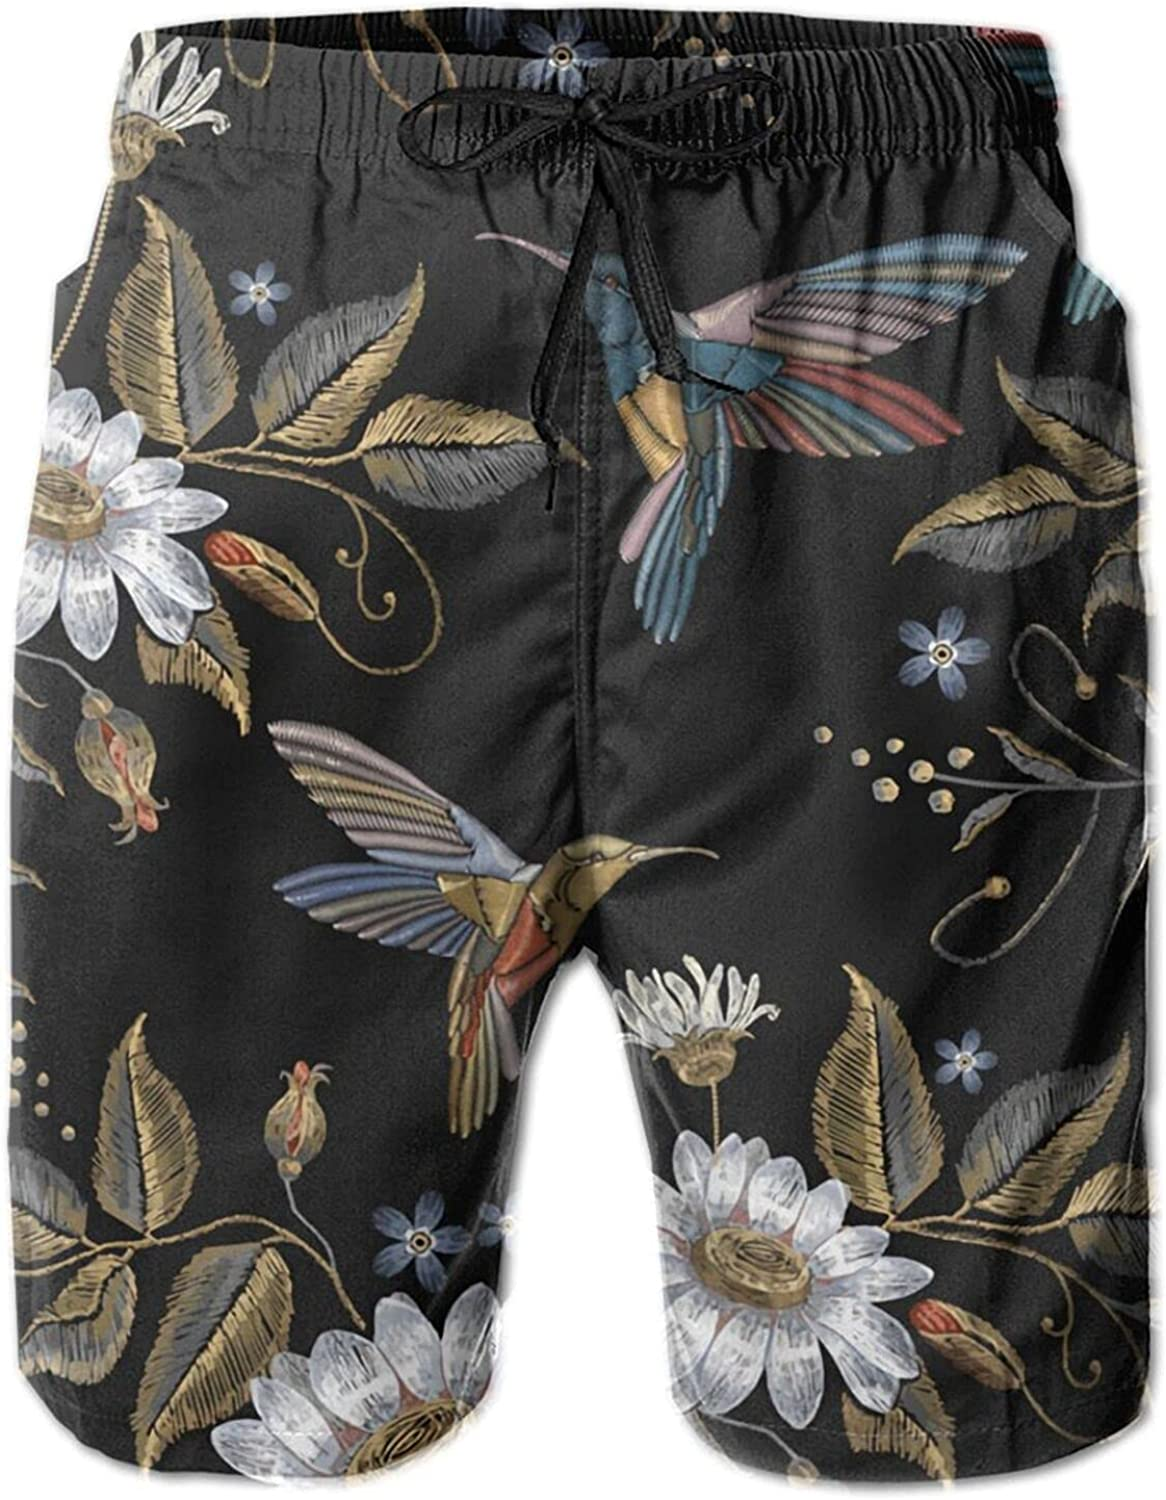 Humming Bird Chamomile The Arts Beach Shorts Mens Swim Trunks Quick Dry Board Pants with Pockets & Mesh Lining